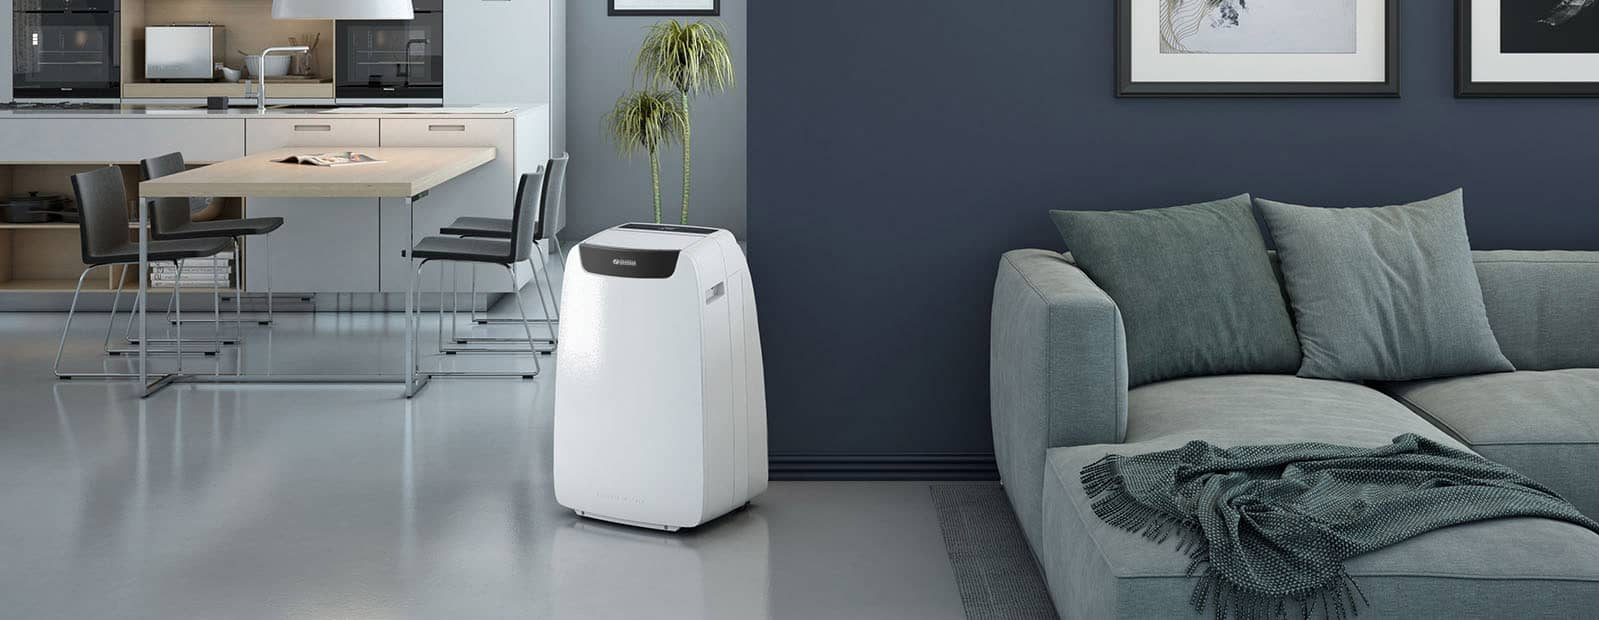 Dolceclima AirPro 14